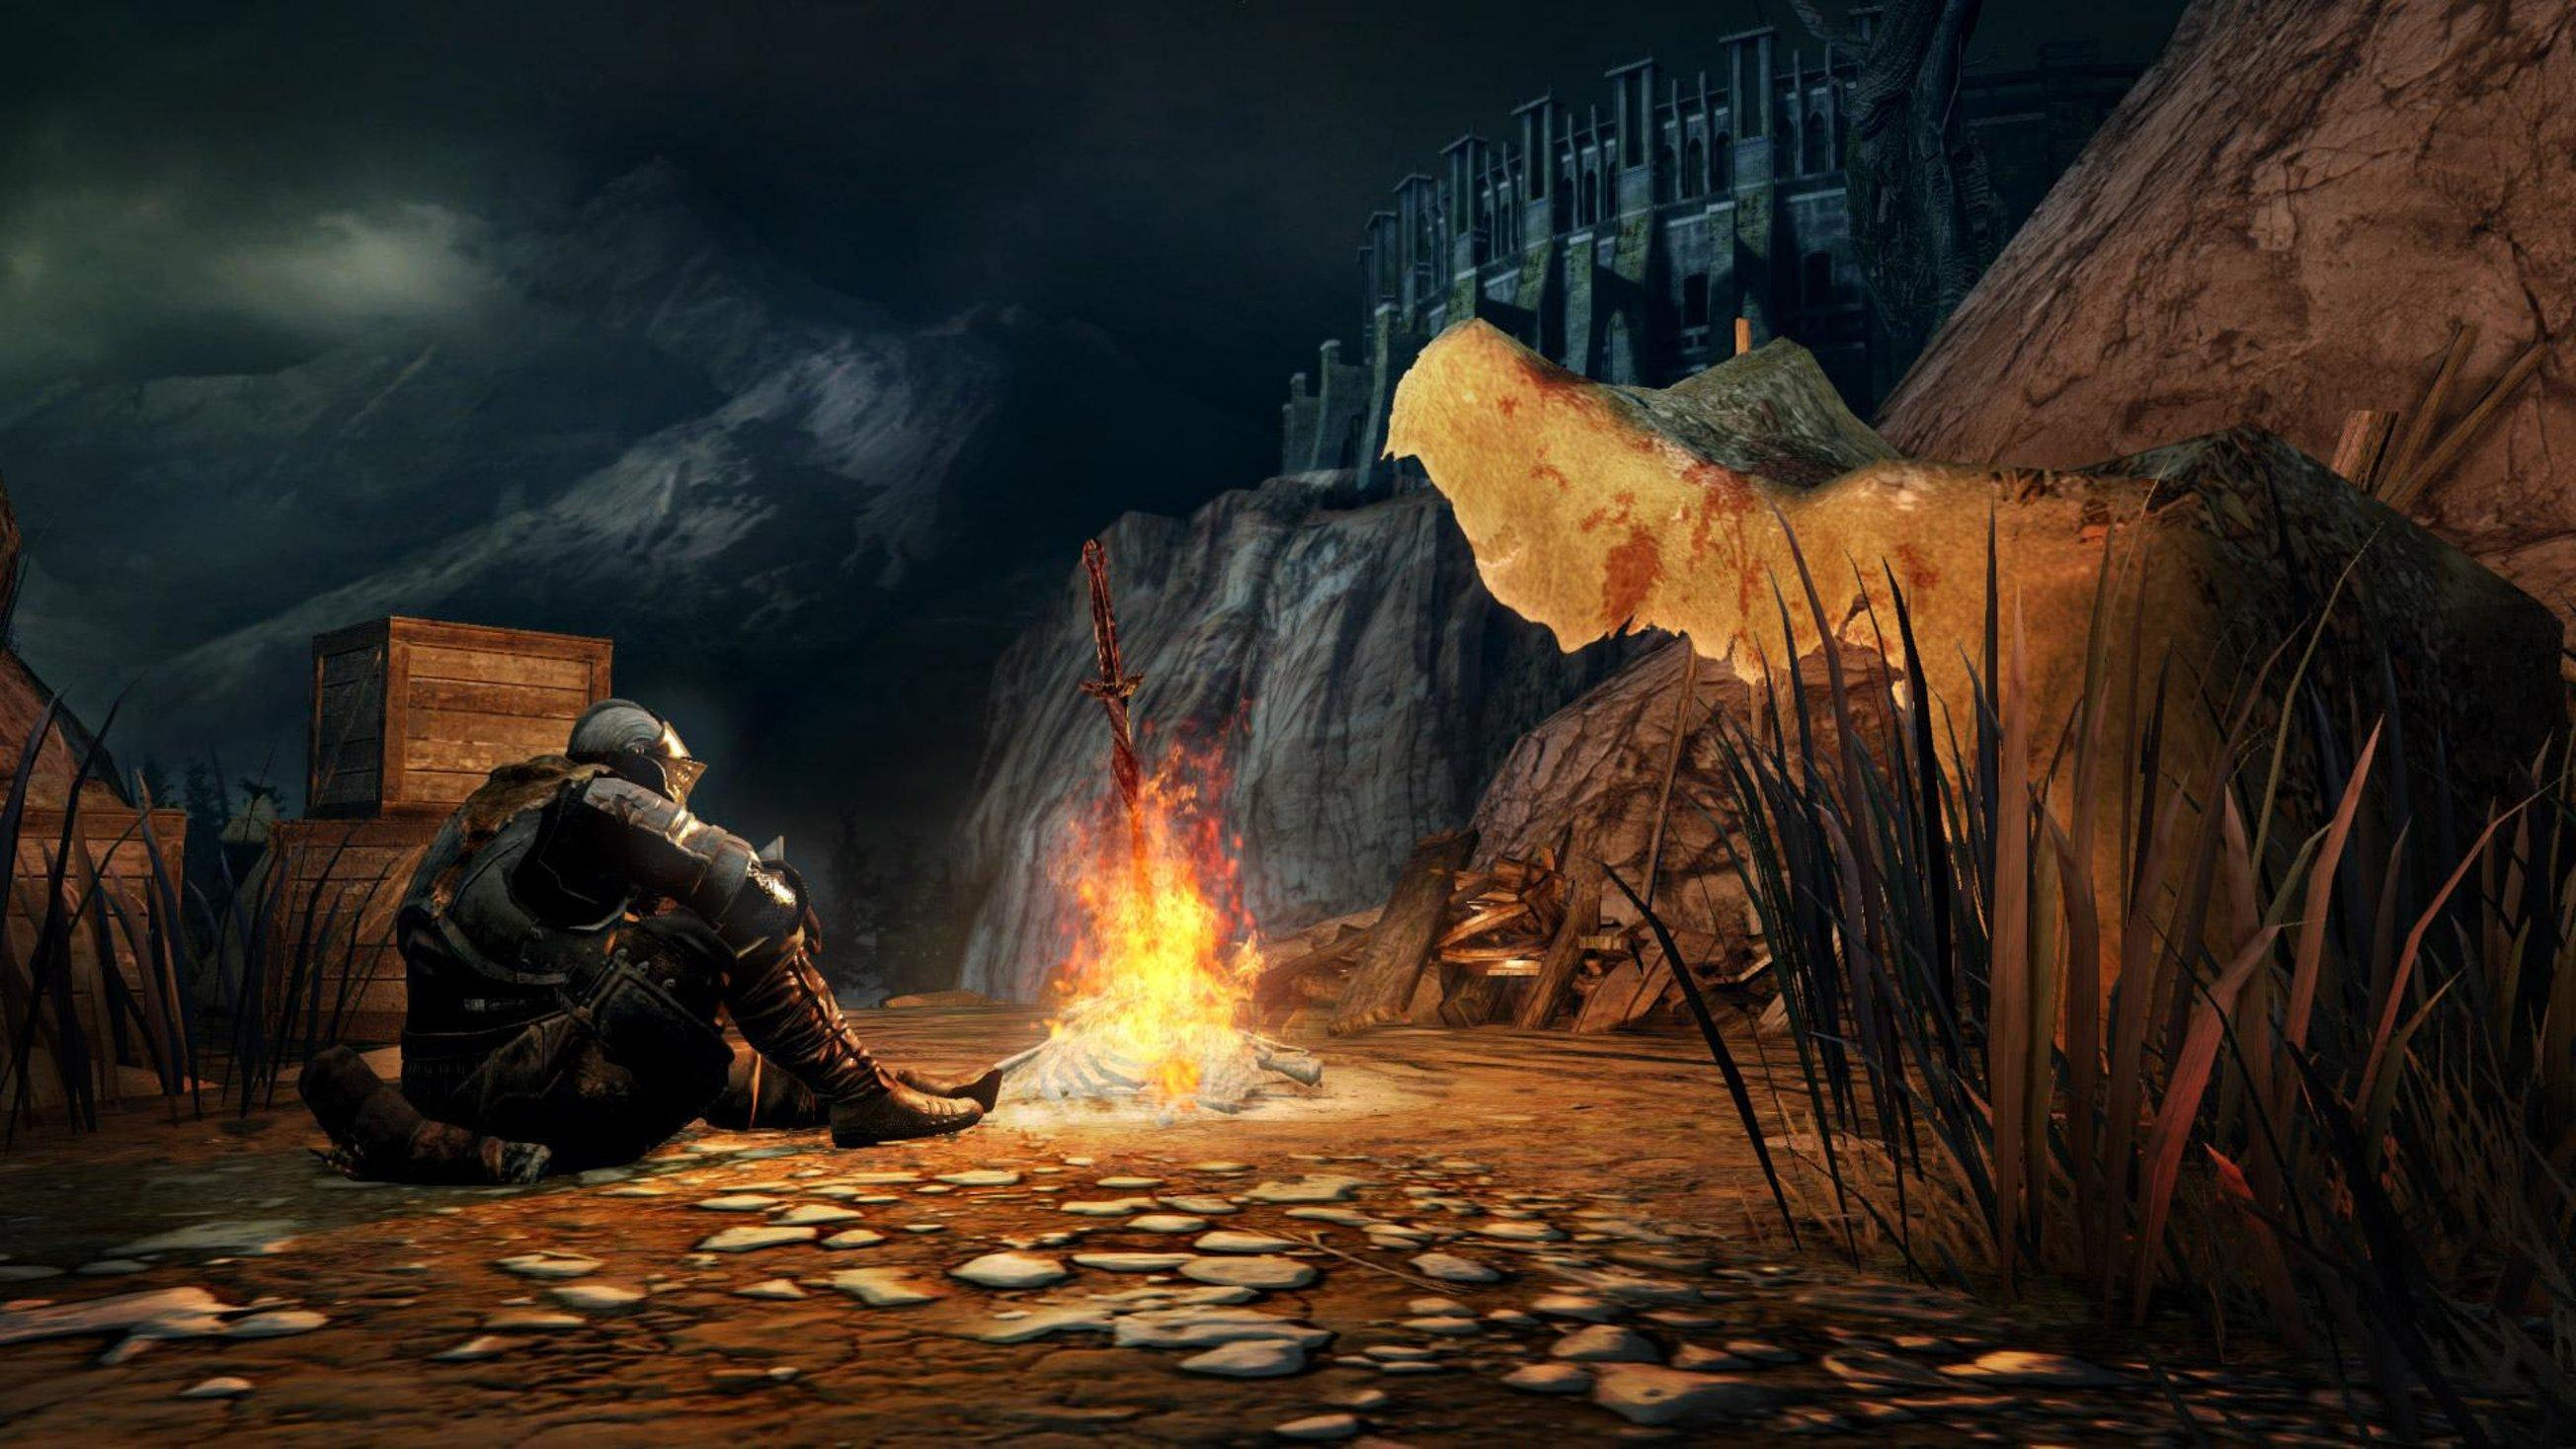 Dark Souls Wallpaper 2018 Pictures HD Images Free for Android - APK